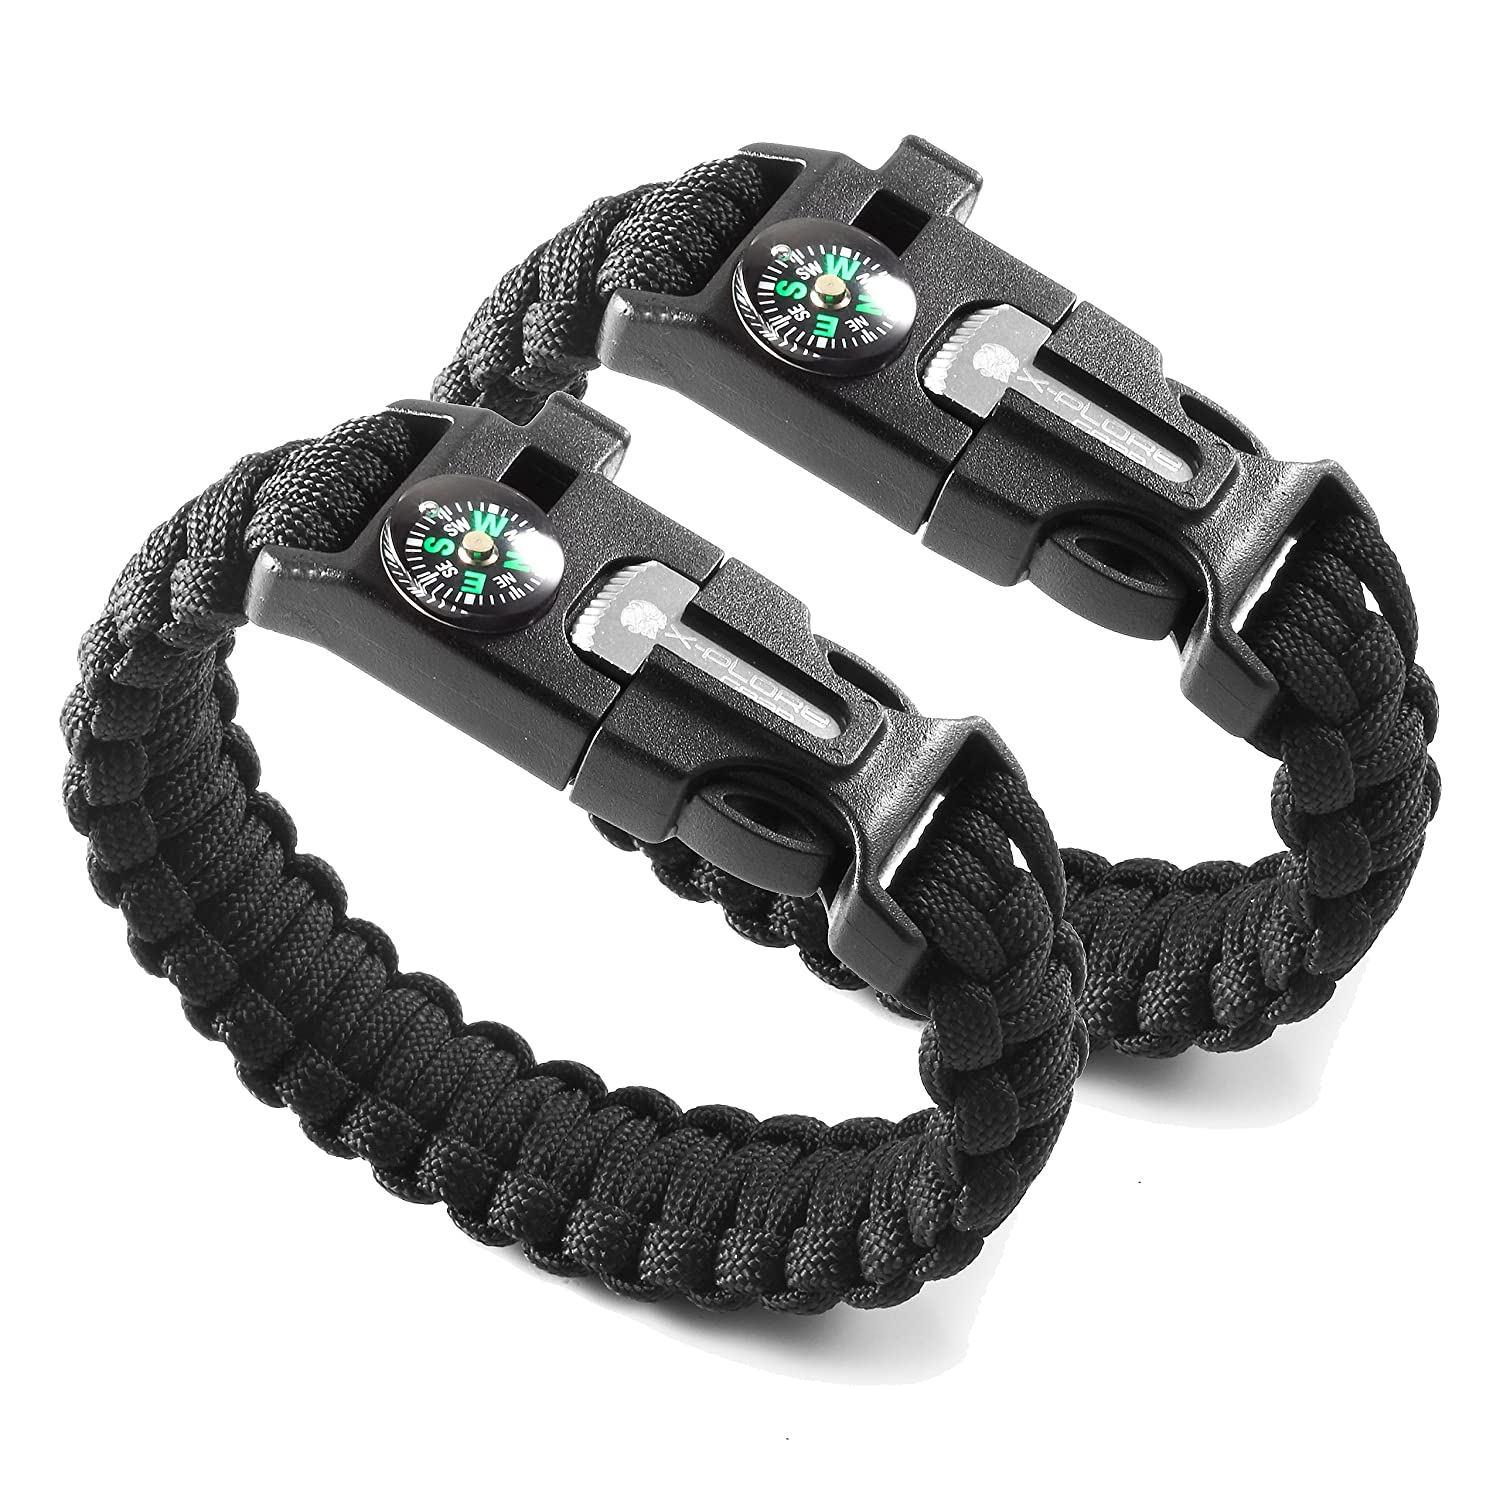 Compass /& Scraper Whistle X-Plore Gear Emergency Paracord Bracelets Best Wilderness Survival-Kit for Camping//Fishing /& More Set of 2| The Ultimate Tactical Survival Gear| Flint Fire Starter